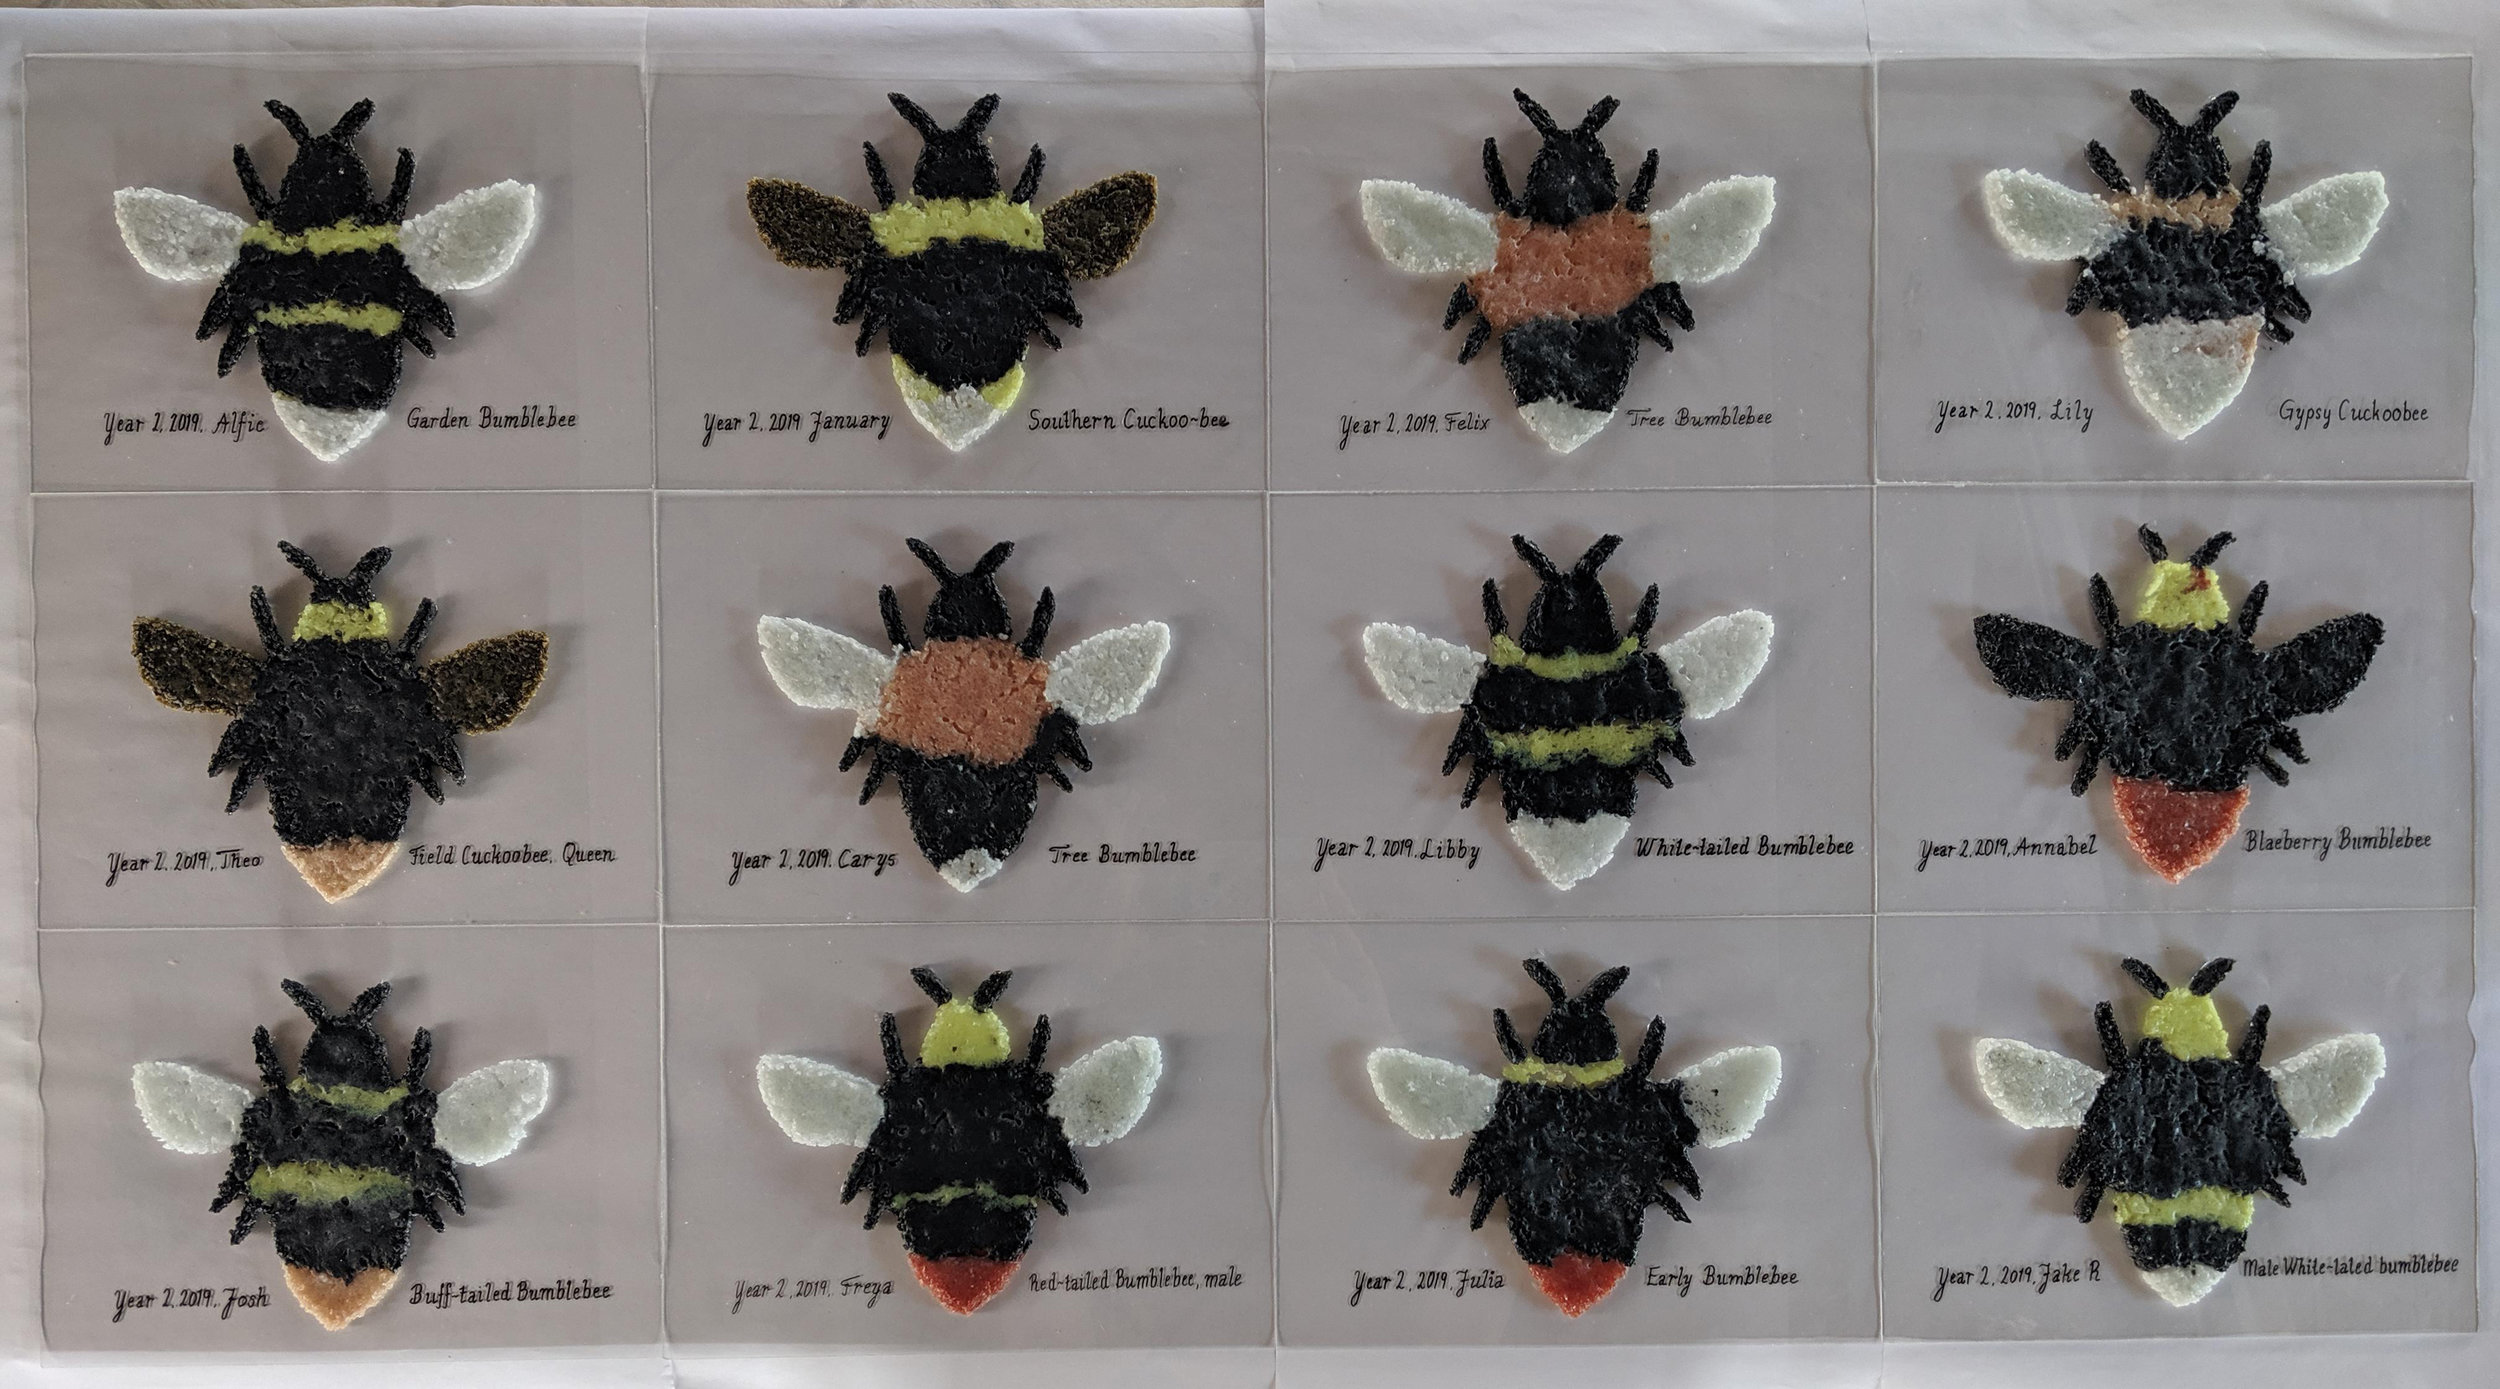 All bumblebees are made by Year 2 schoolchildren